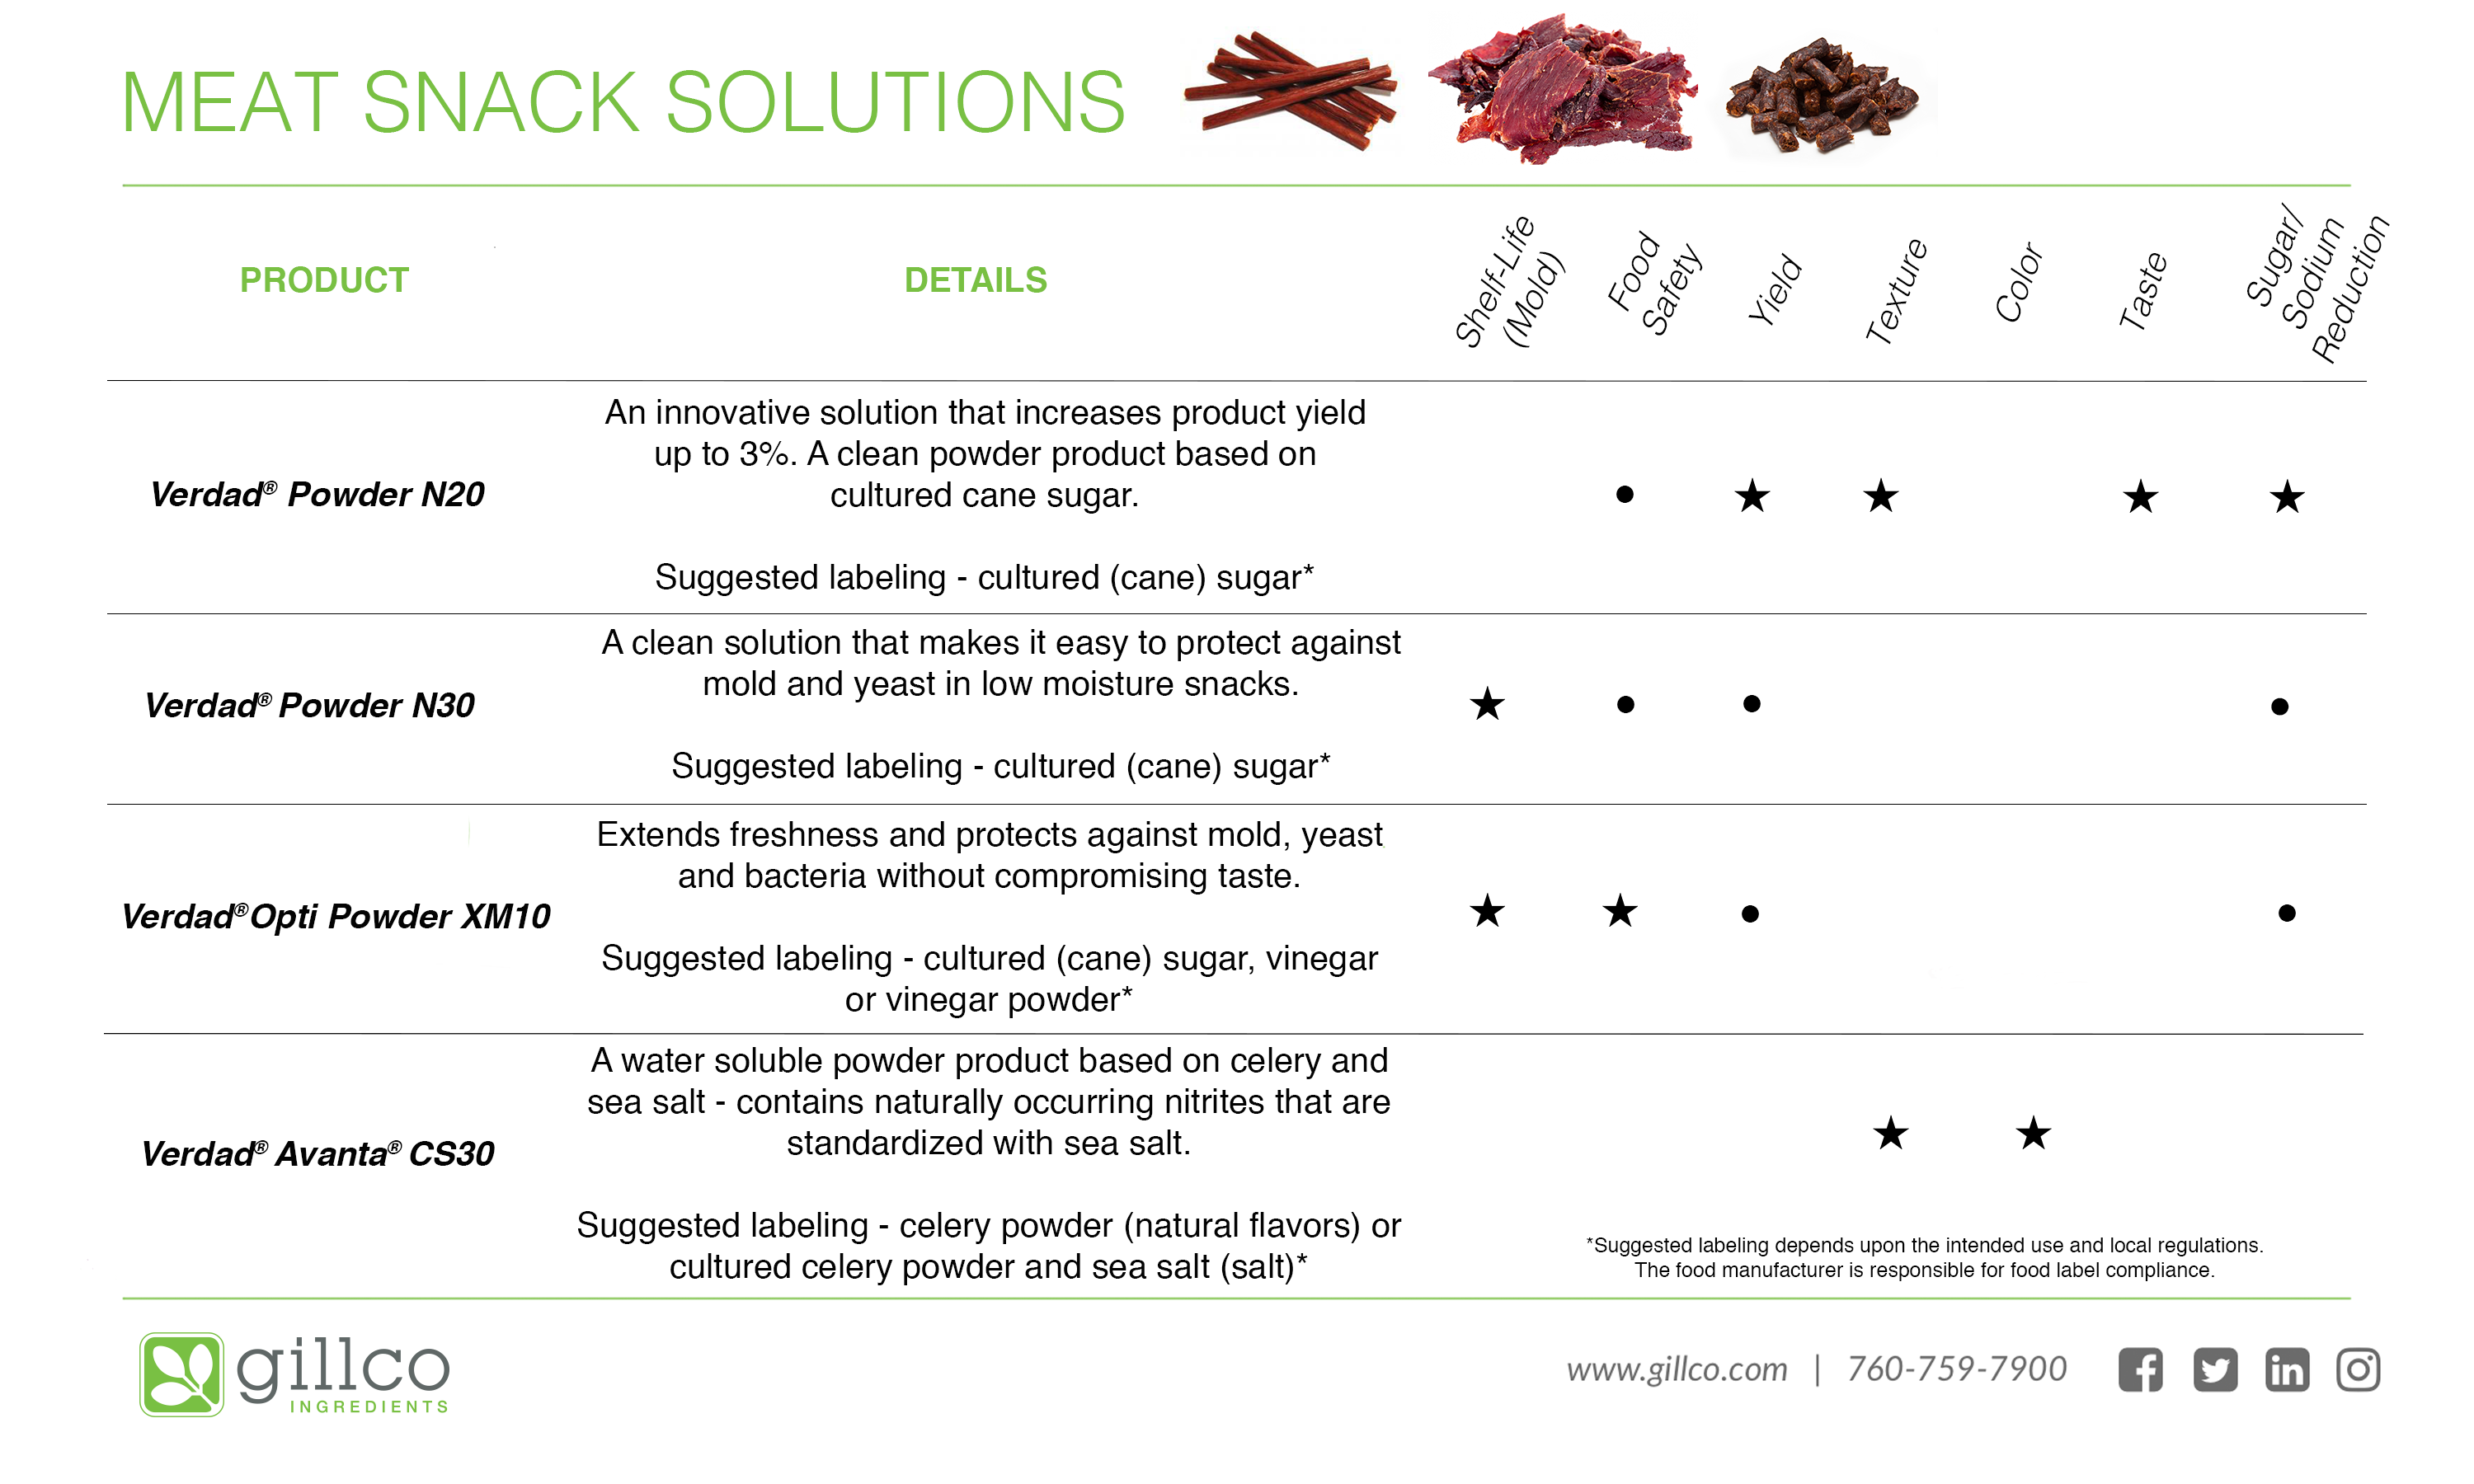 gillco meat snack solutions verdad